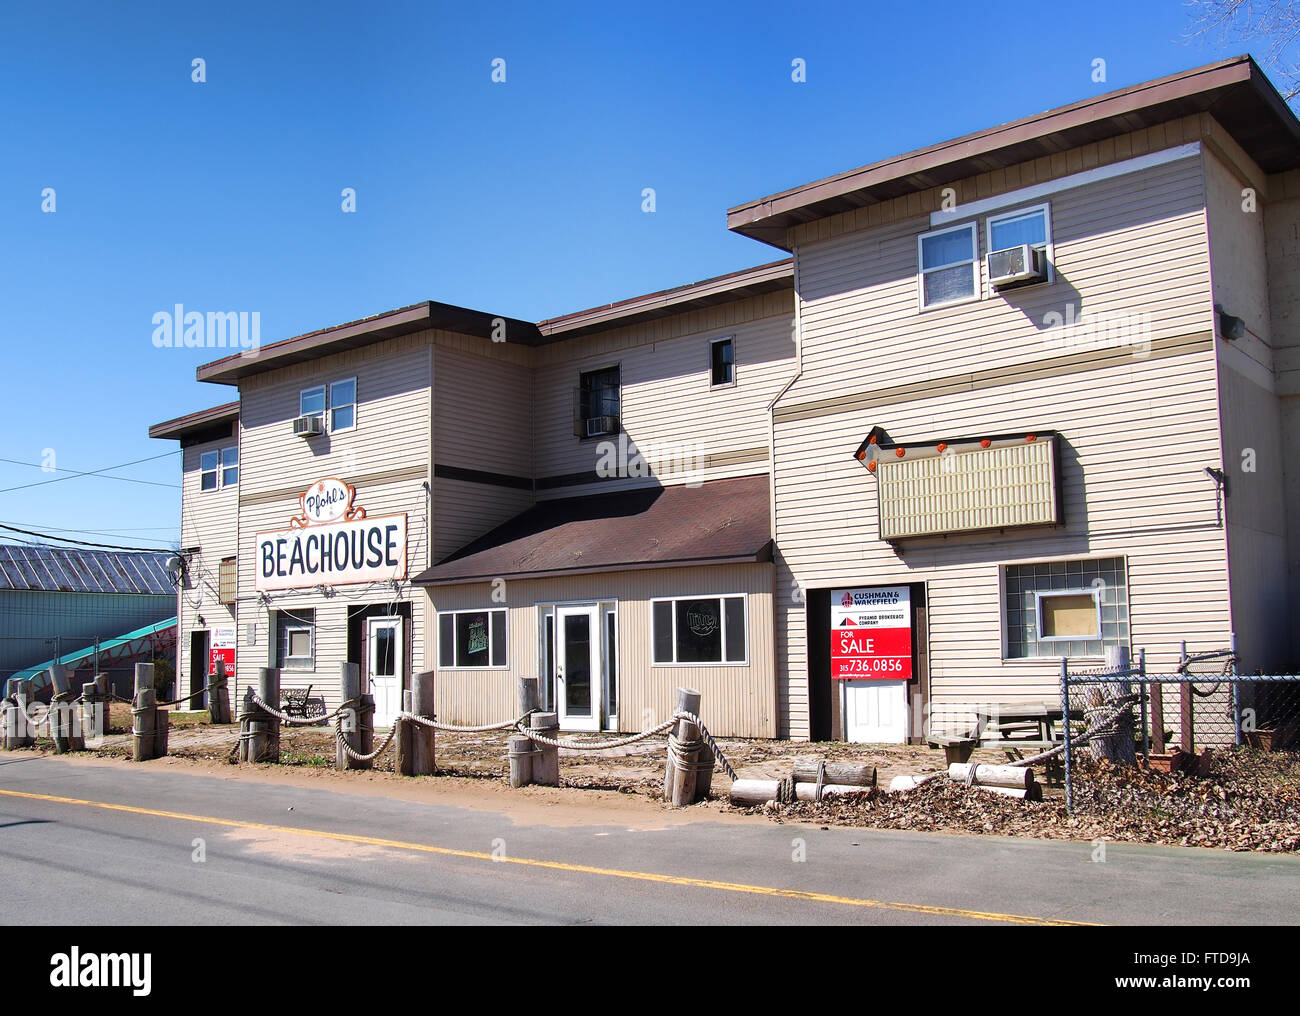 Bar for sale - Stock Image